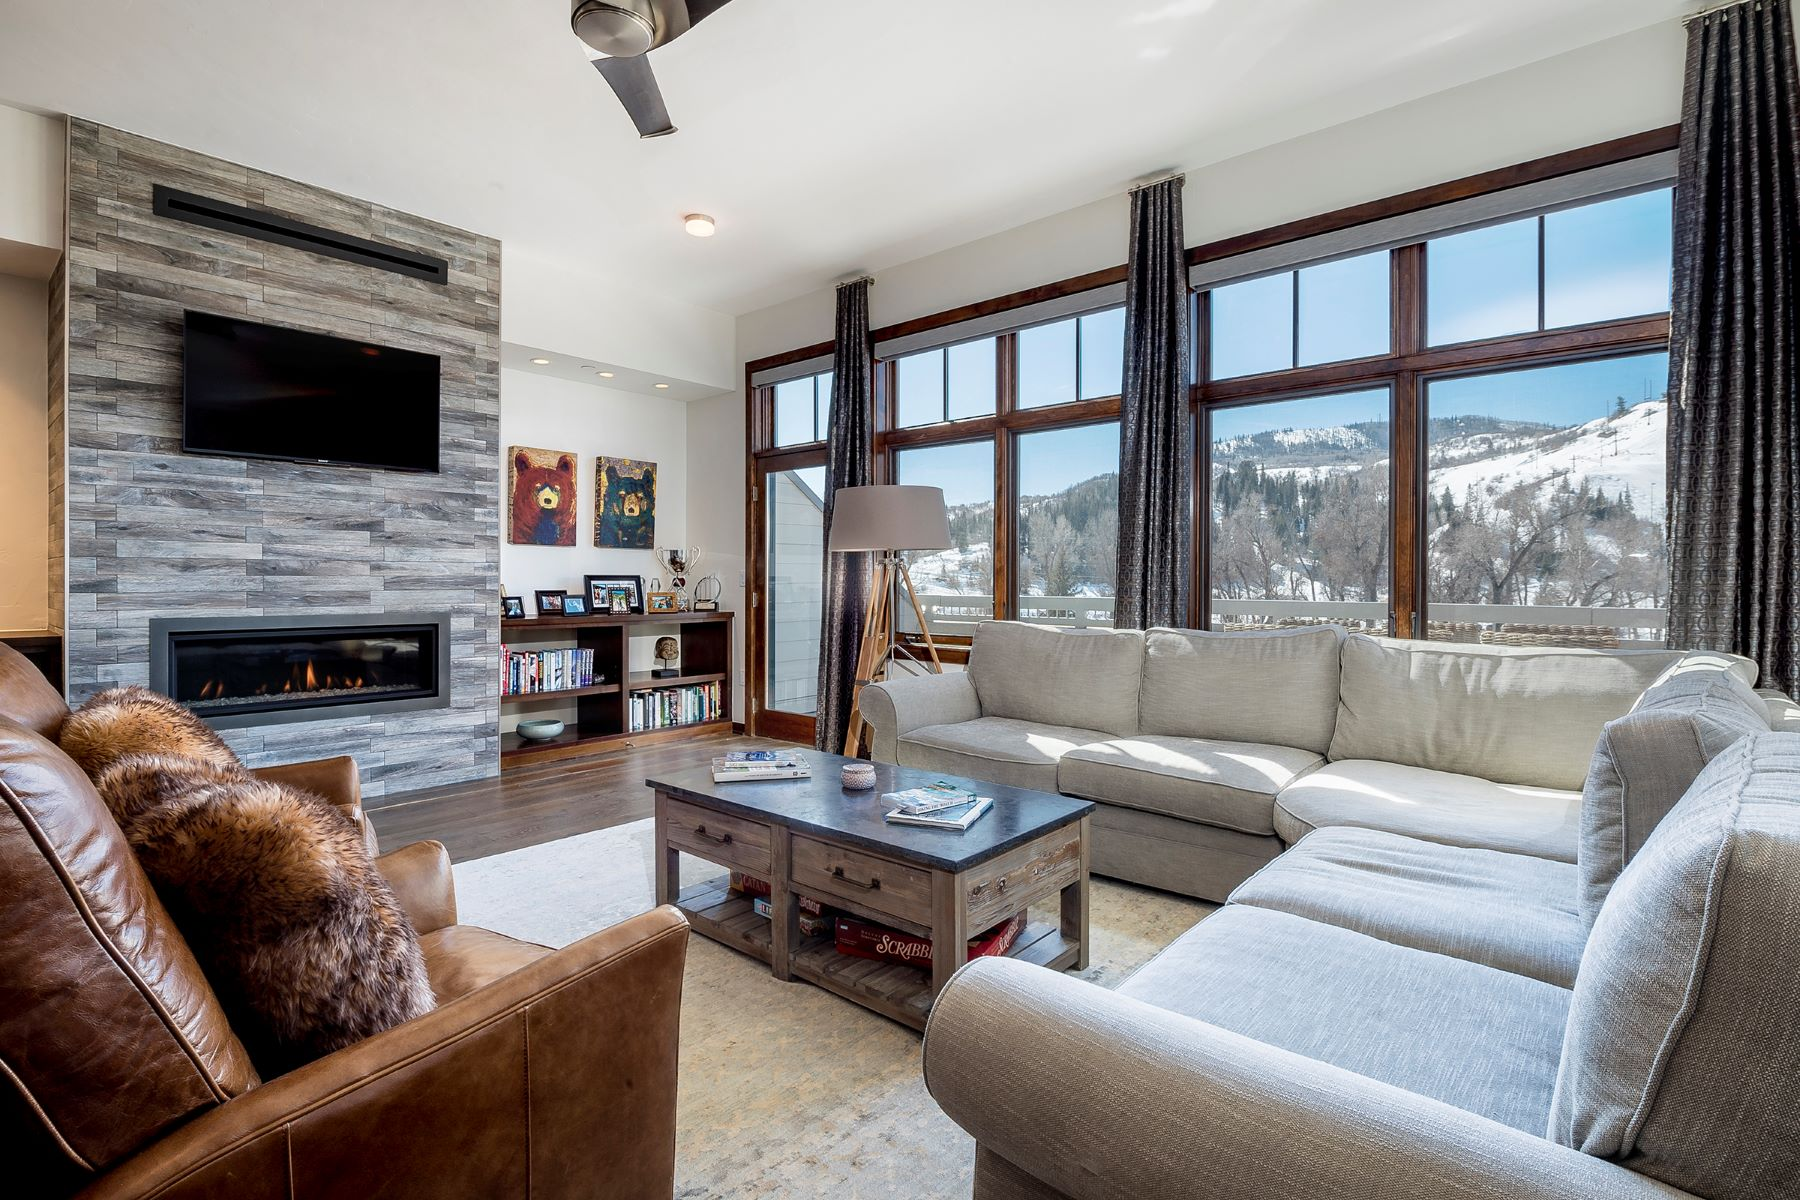 Condominium for Sale at Downtown Steamboat Penthouse 700 Yampa Ave #A404, Steamboat Springs, Colorado, 80487 United States